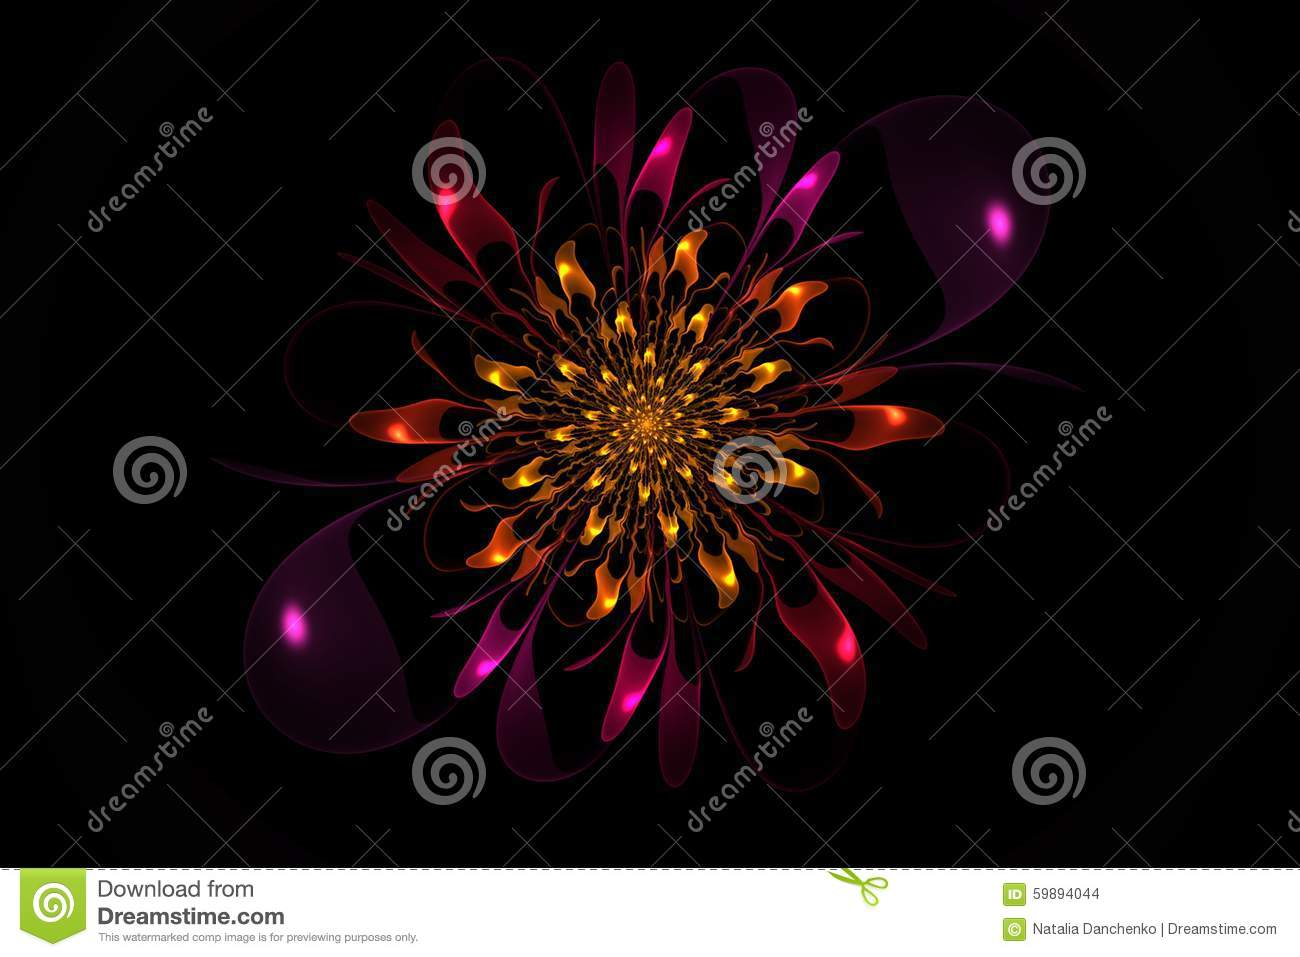 Aster. Created in Apophysis